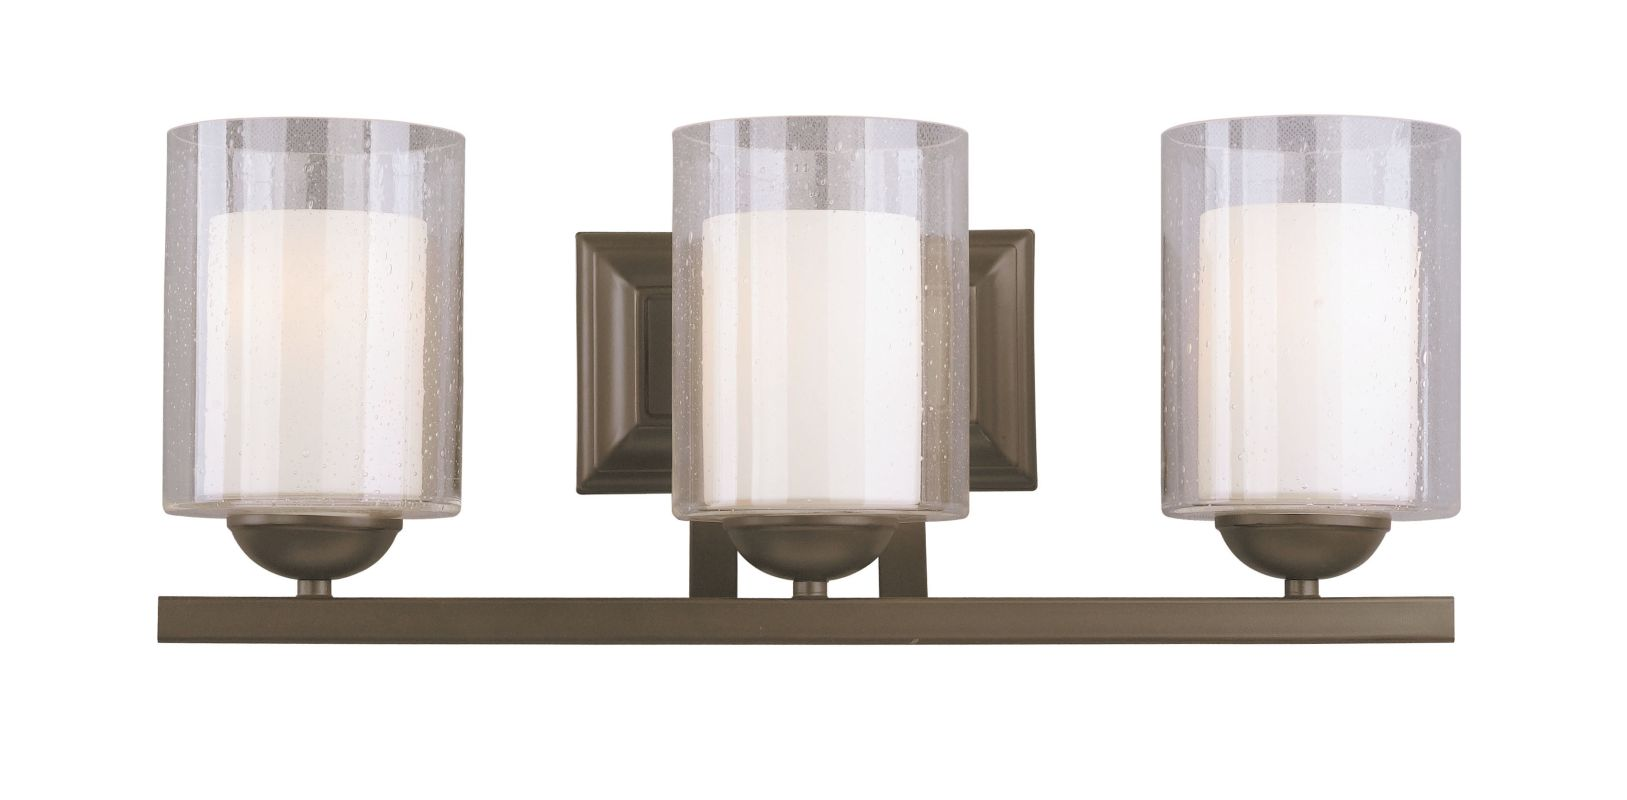 woodbridge lighting 53113 brz bronze cosmo 3 light vanity light. Black Bedroom Furniture Sets. Home Design Ideas